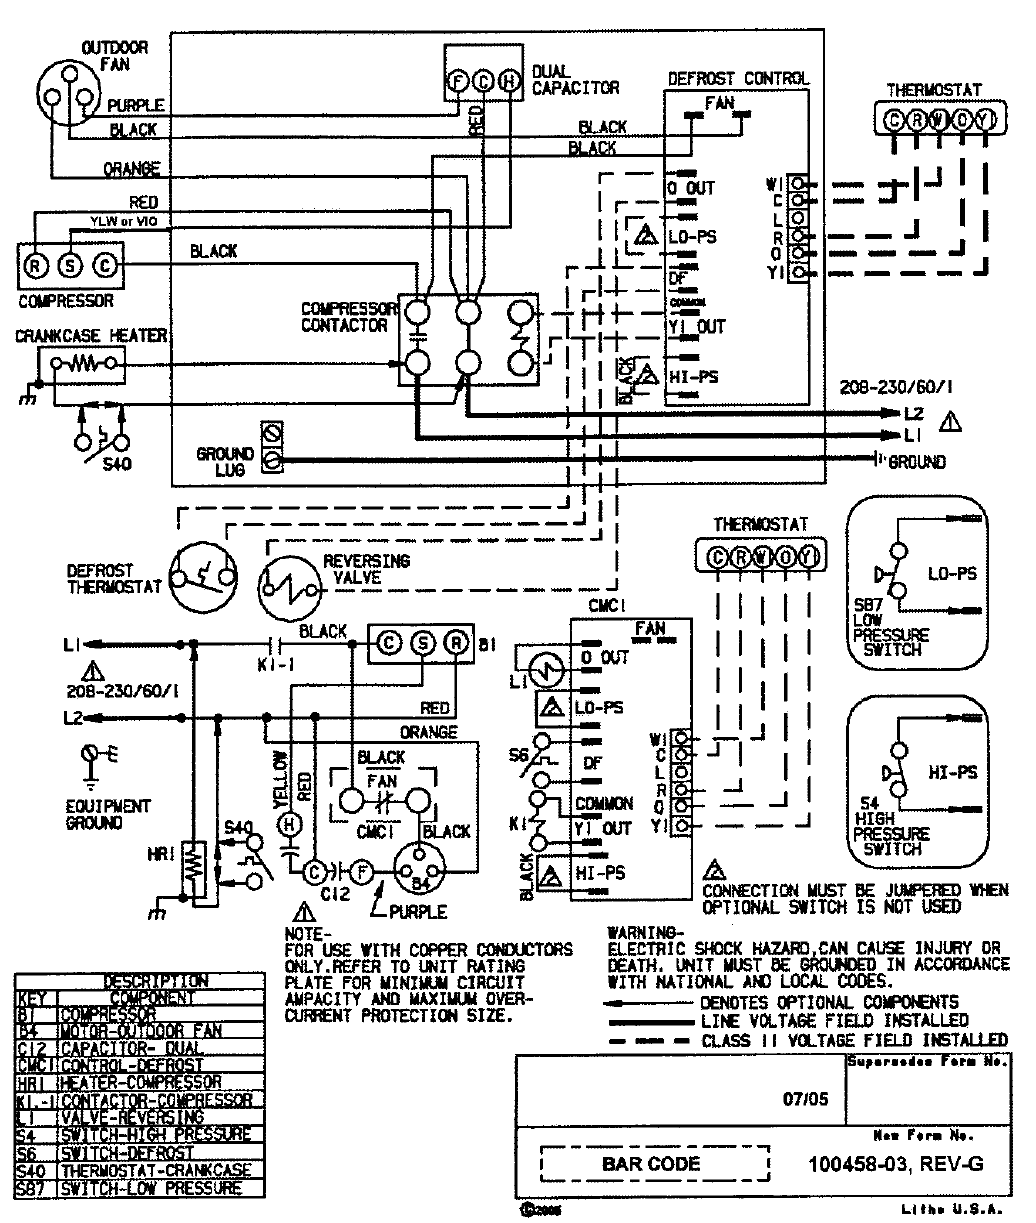 [DHAV_9290]  Page 9 of Ducane (HVAC) Heat Pump 2HP13 User Guide | ManualsOnline.com | Wiring Diagram For Ducane Air Conditioner |  | Appliance Manuals - ManualsOnline.com